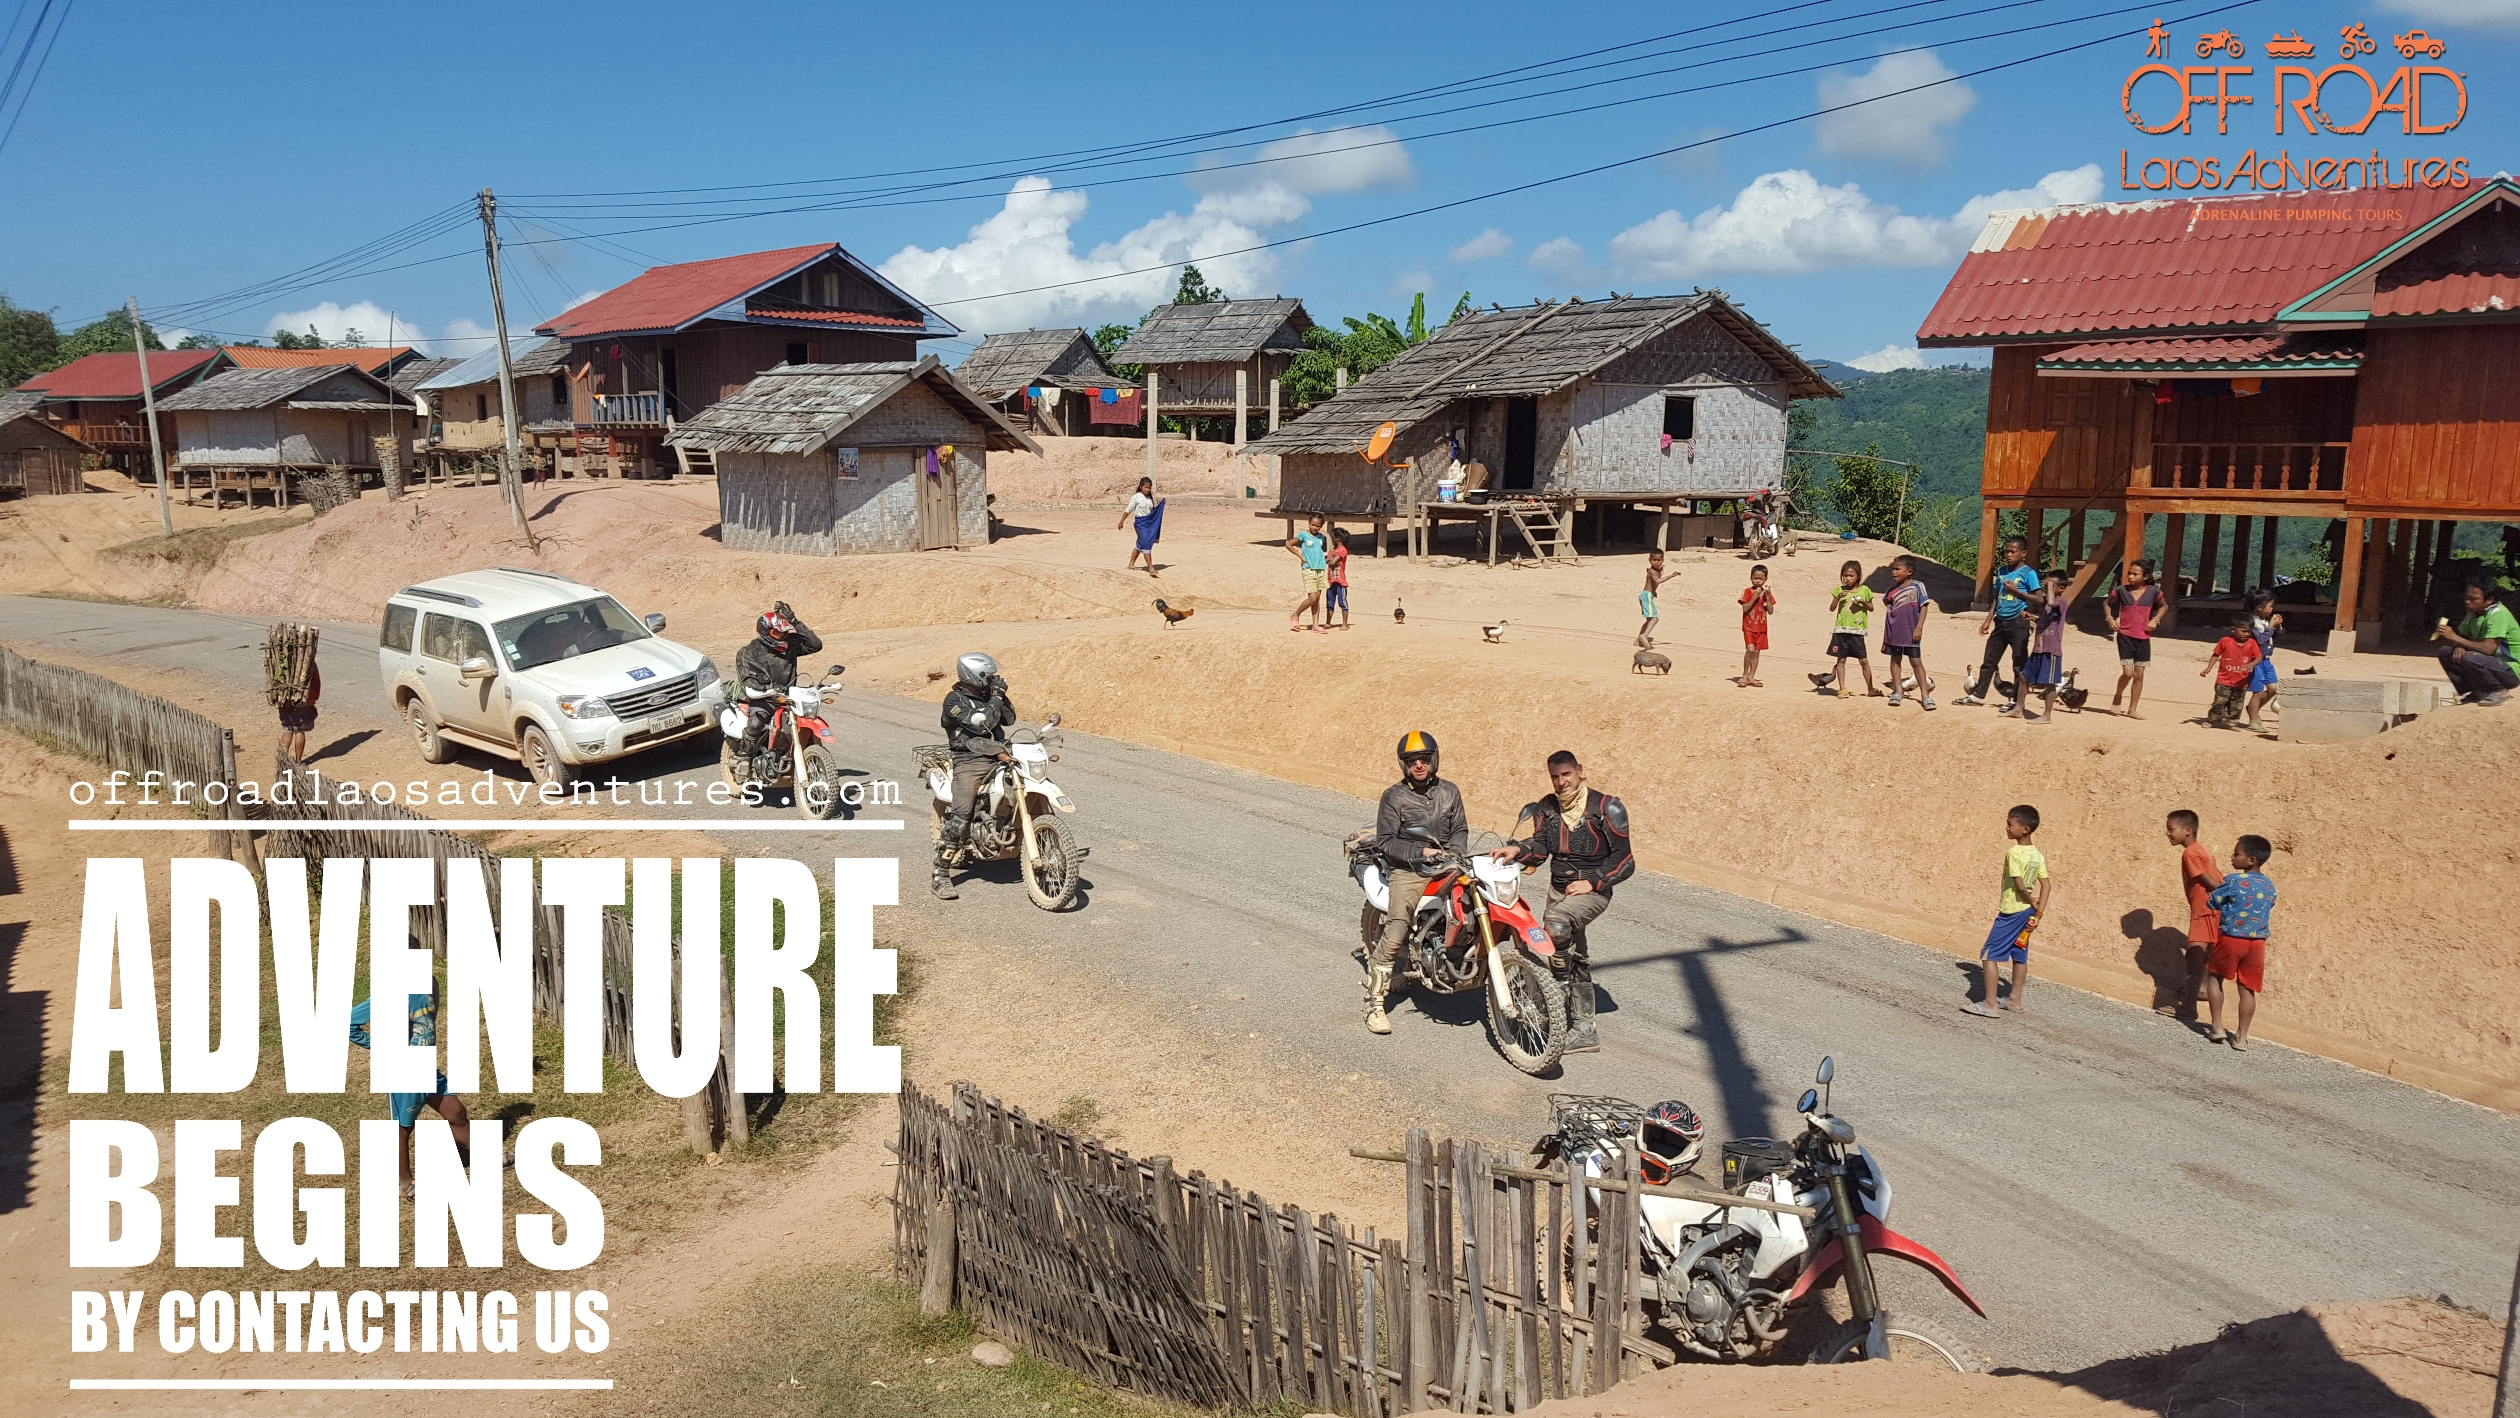 Offroad Laos Adventures (Official) | Laos Motorbike Adventure Tours